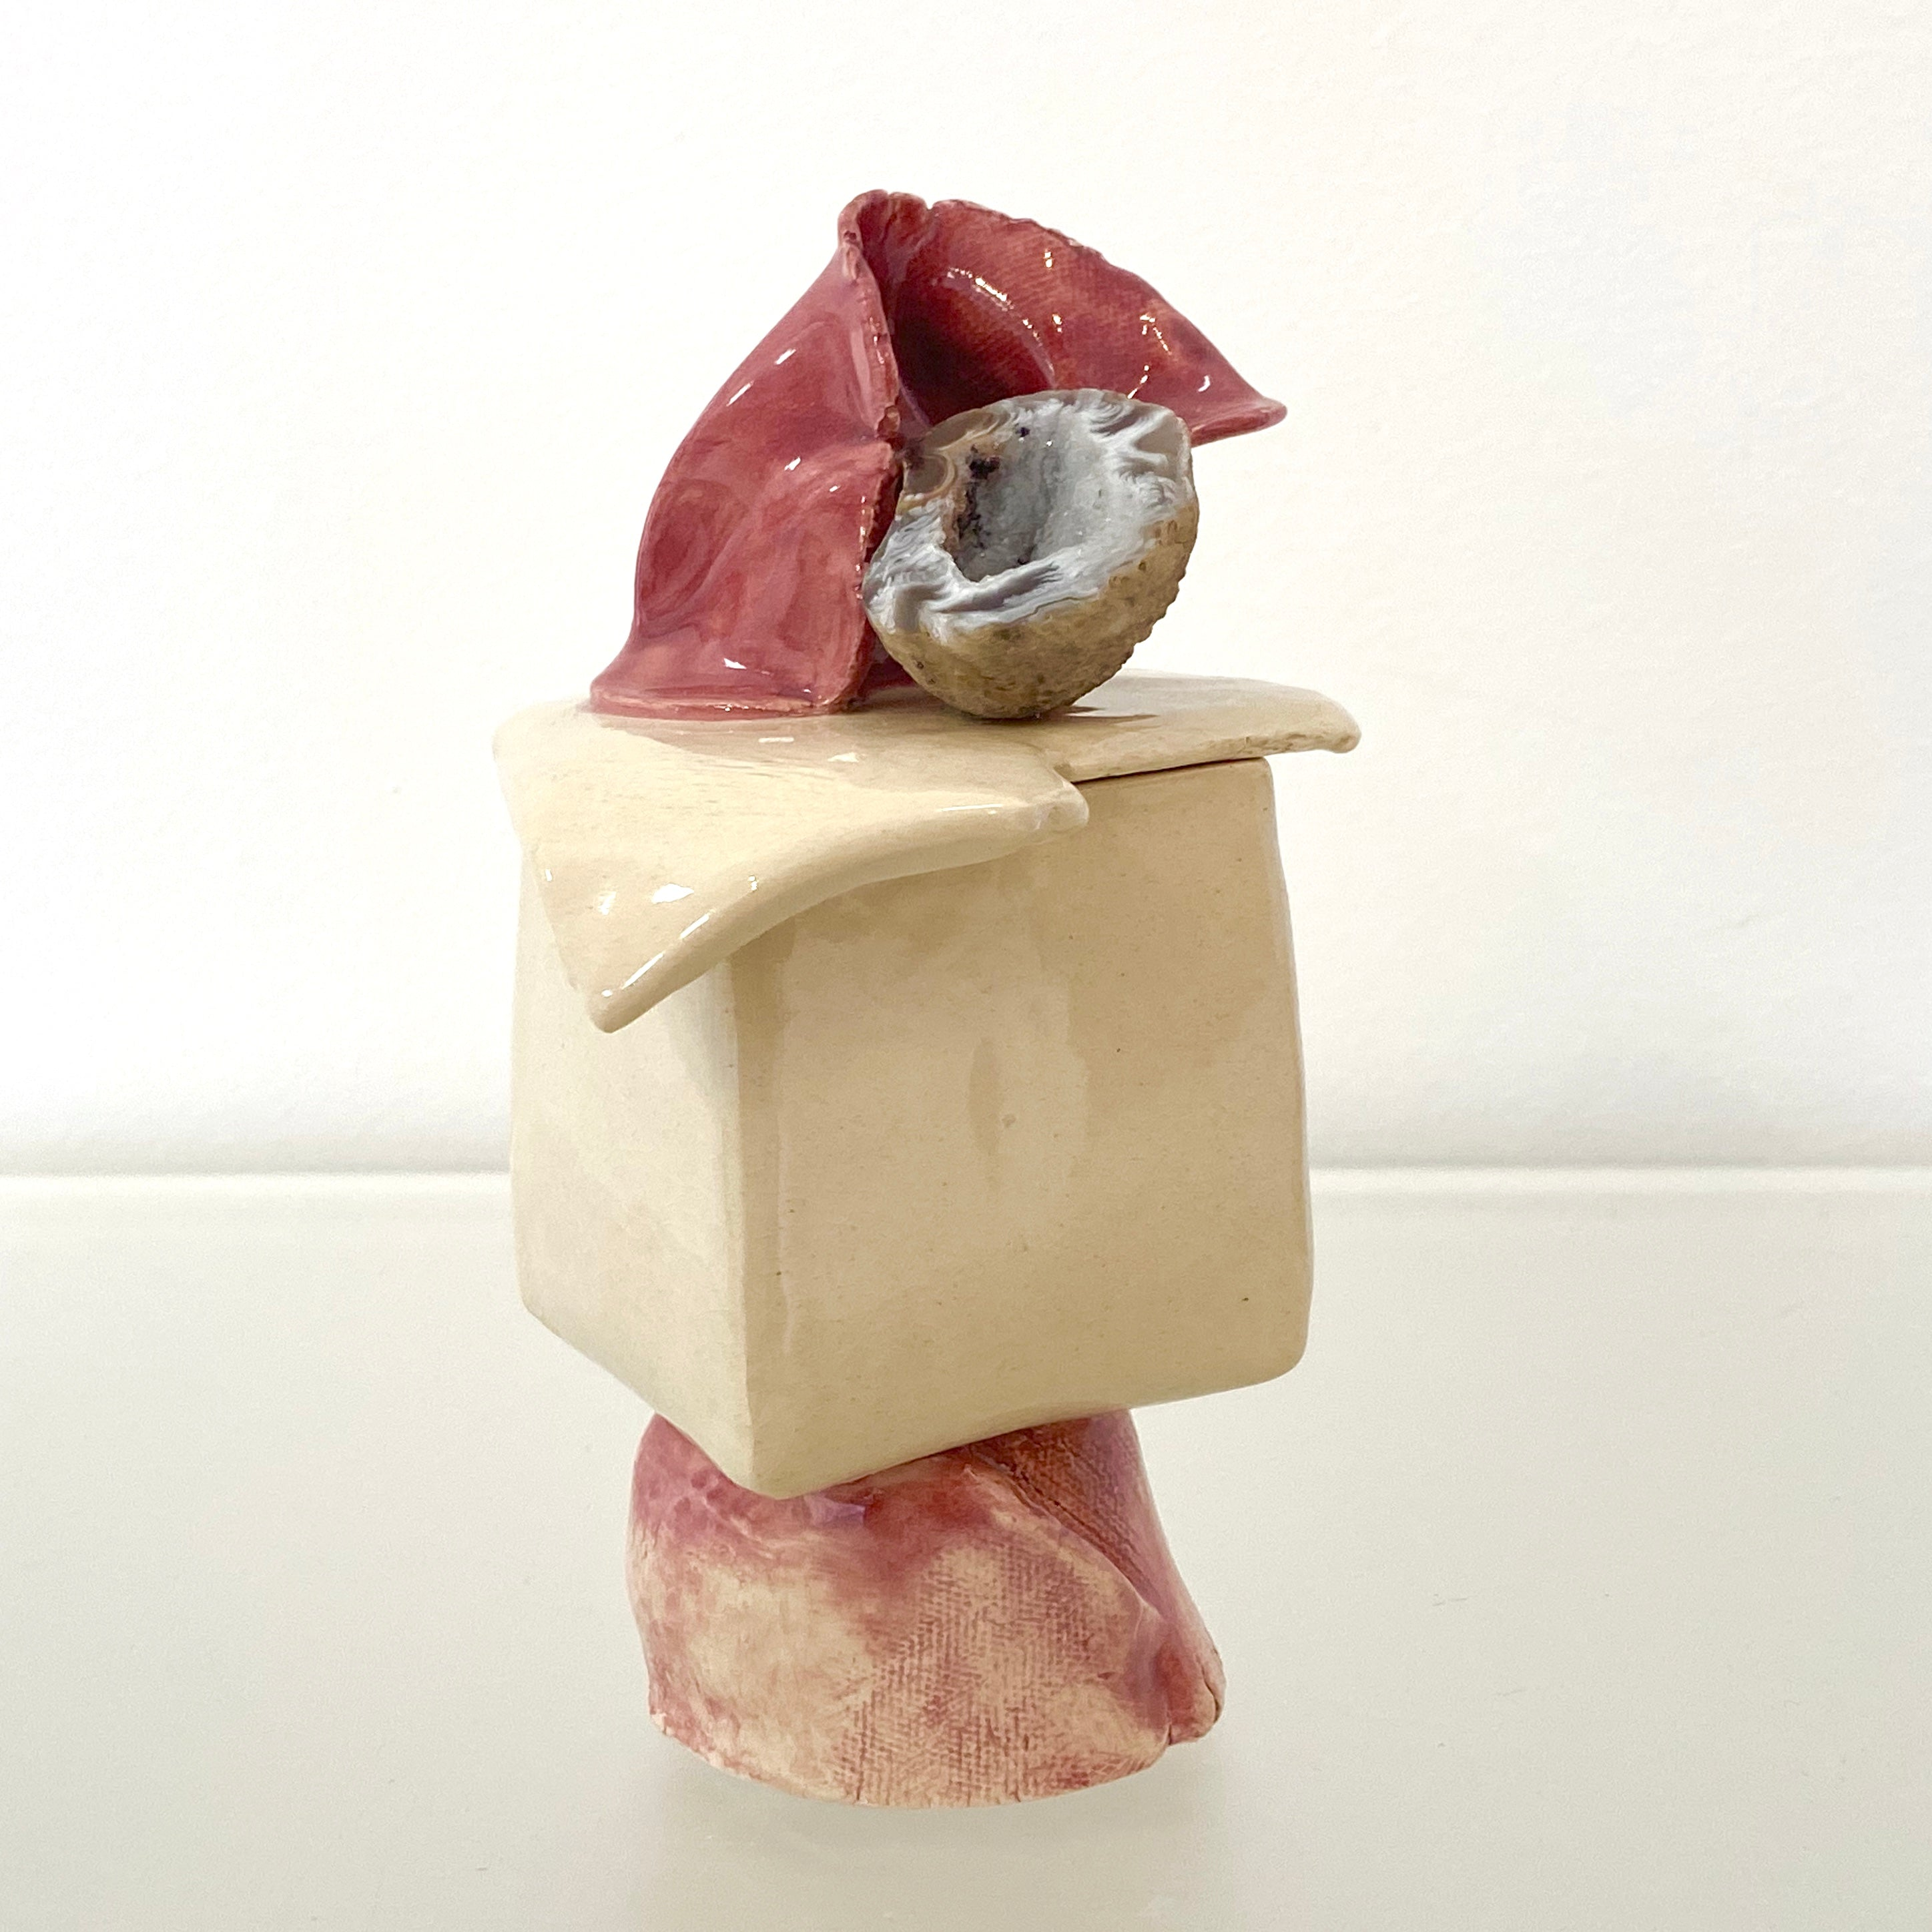 Small White and Red Sculpture with Geode